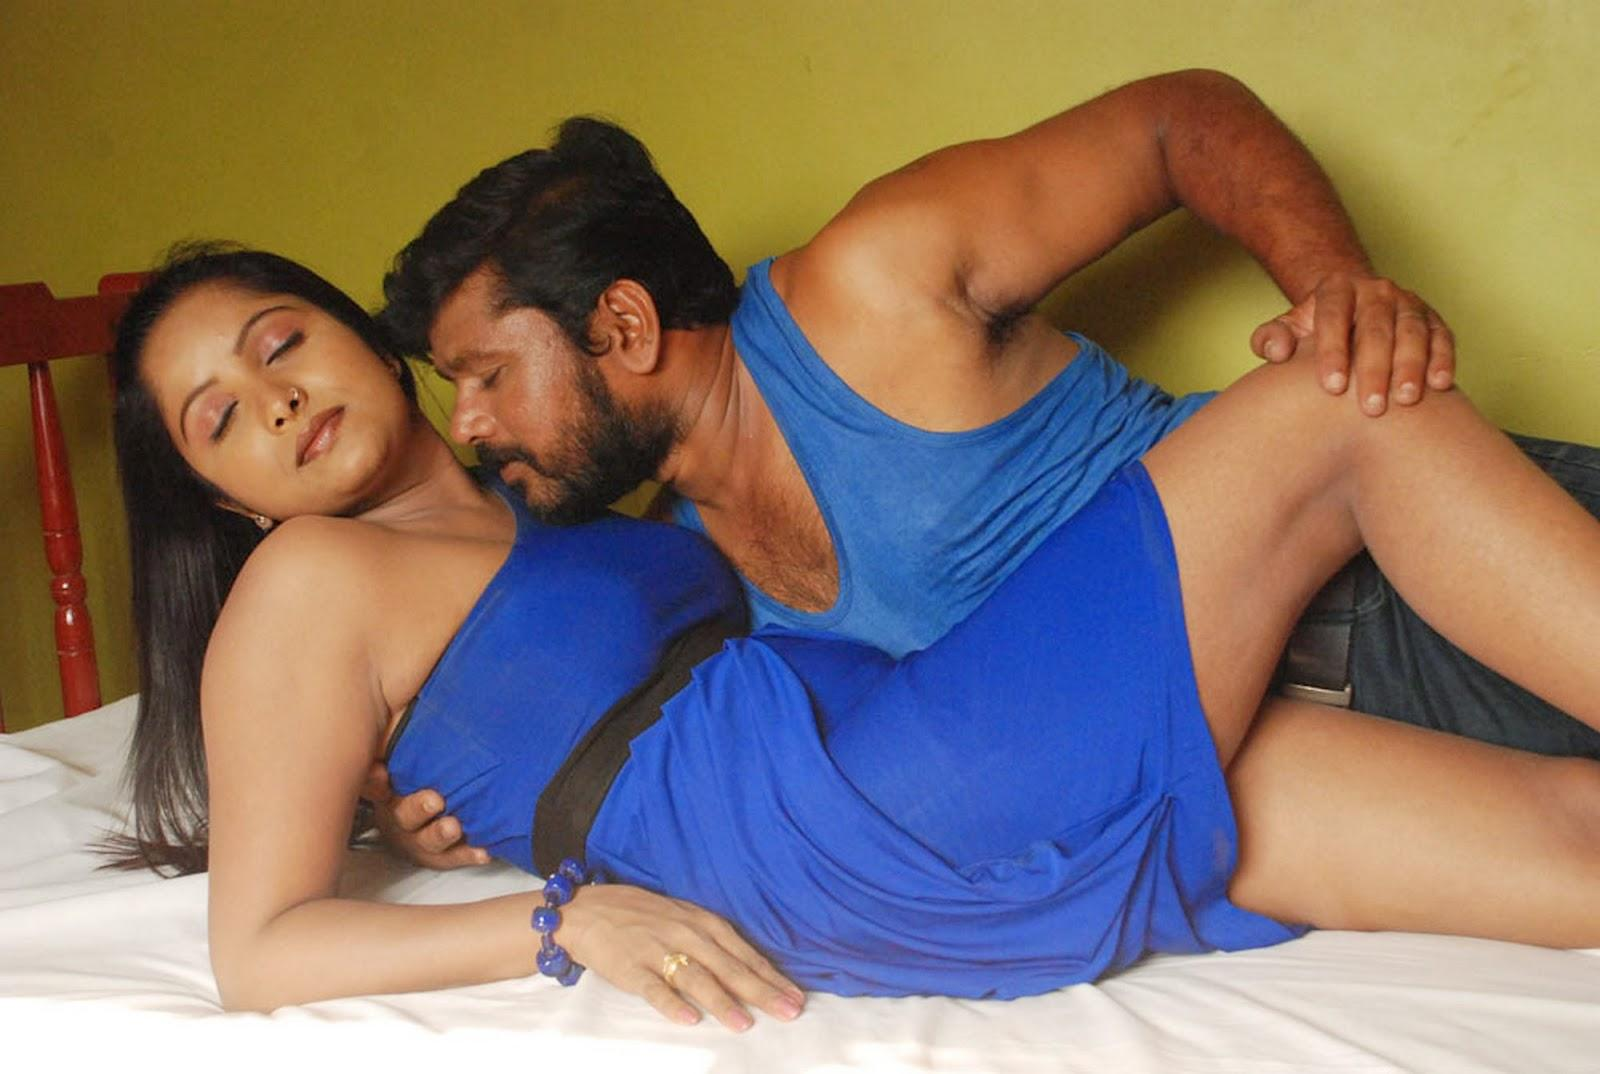 Latest 2013 Indian English Malayalam Sexy Adult Erotic Comedy Action Superhit Movies Collection